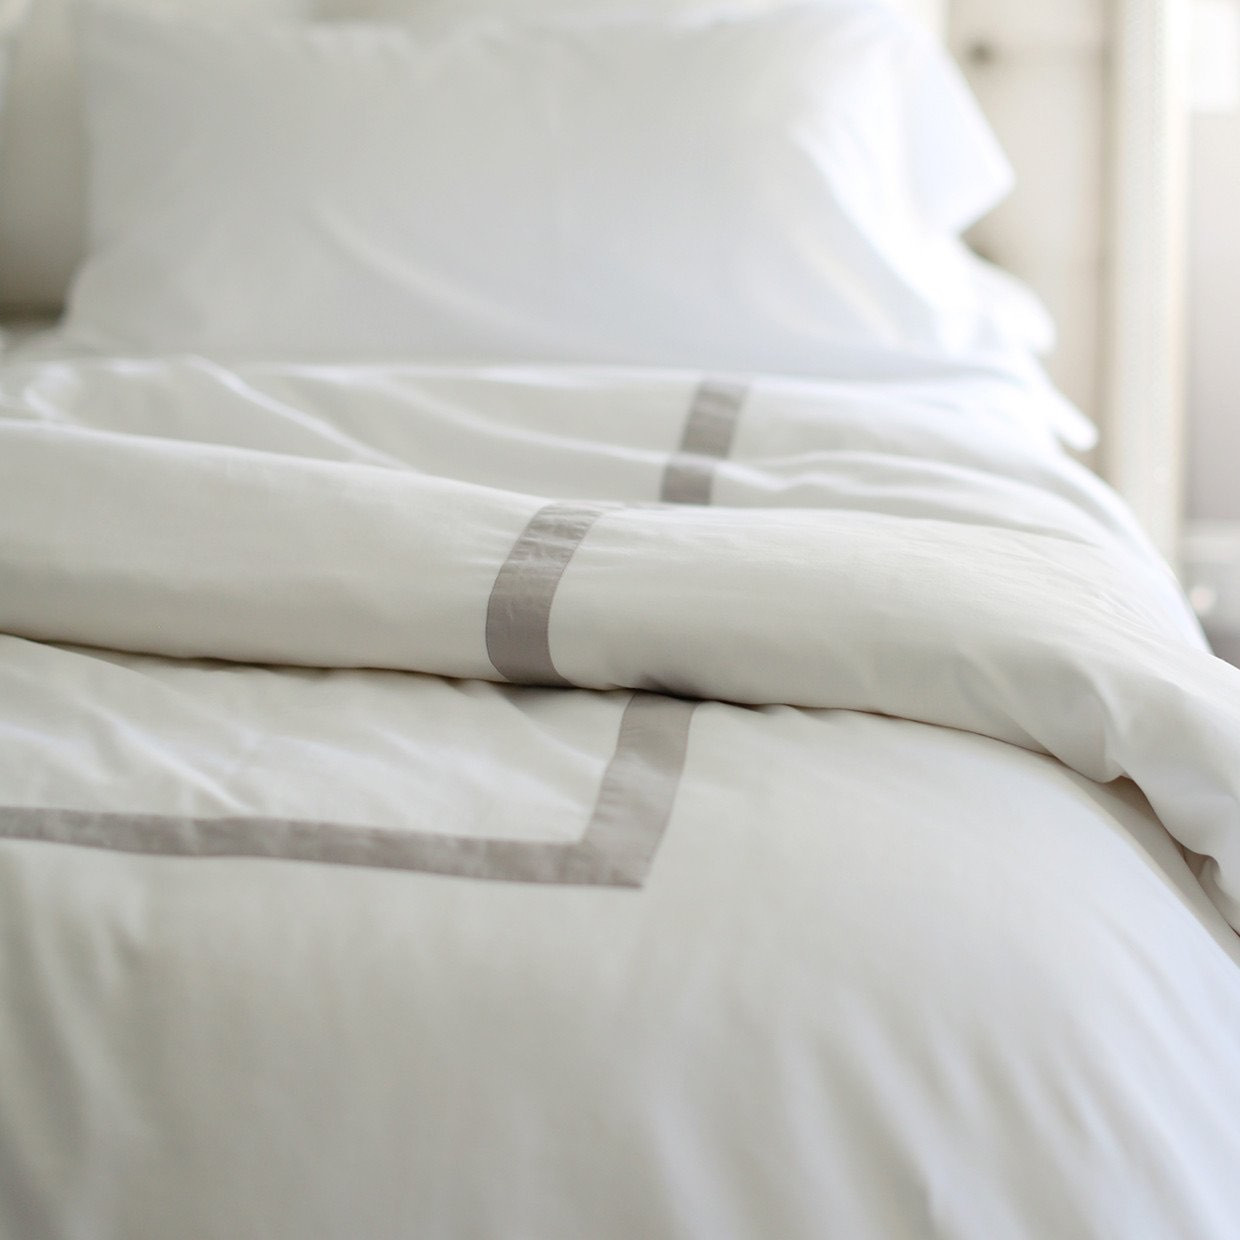 Modern Banded Duvet Covers in Dual Colors by Boll & Branch ®